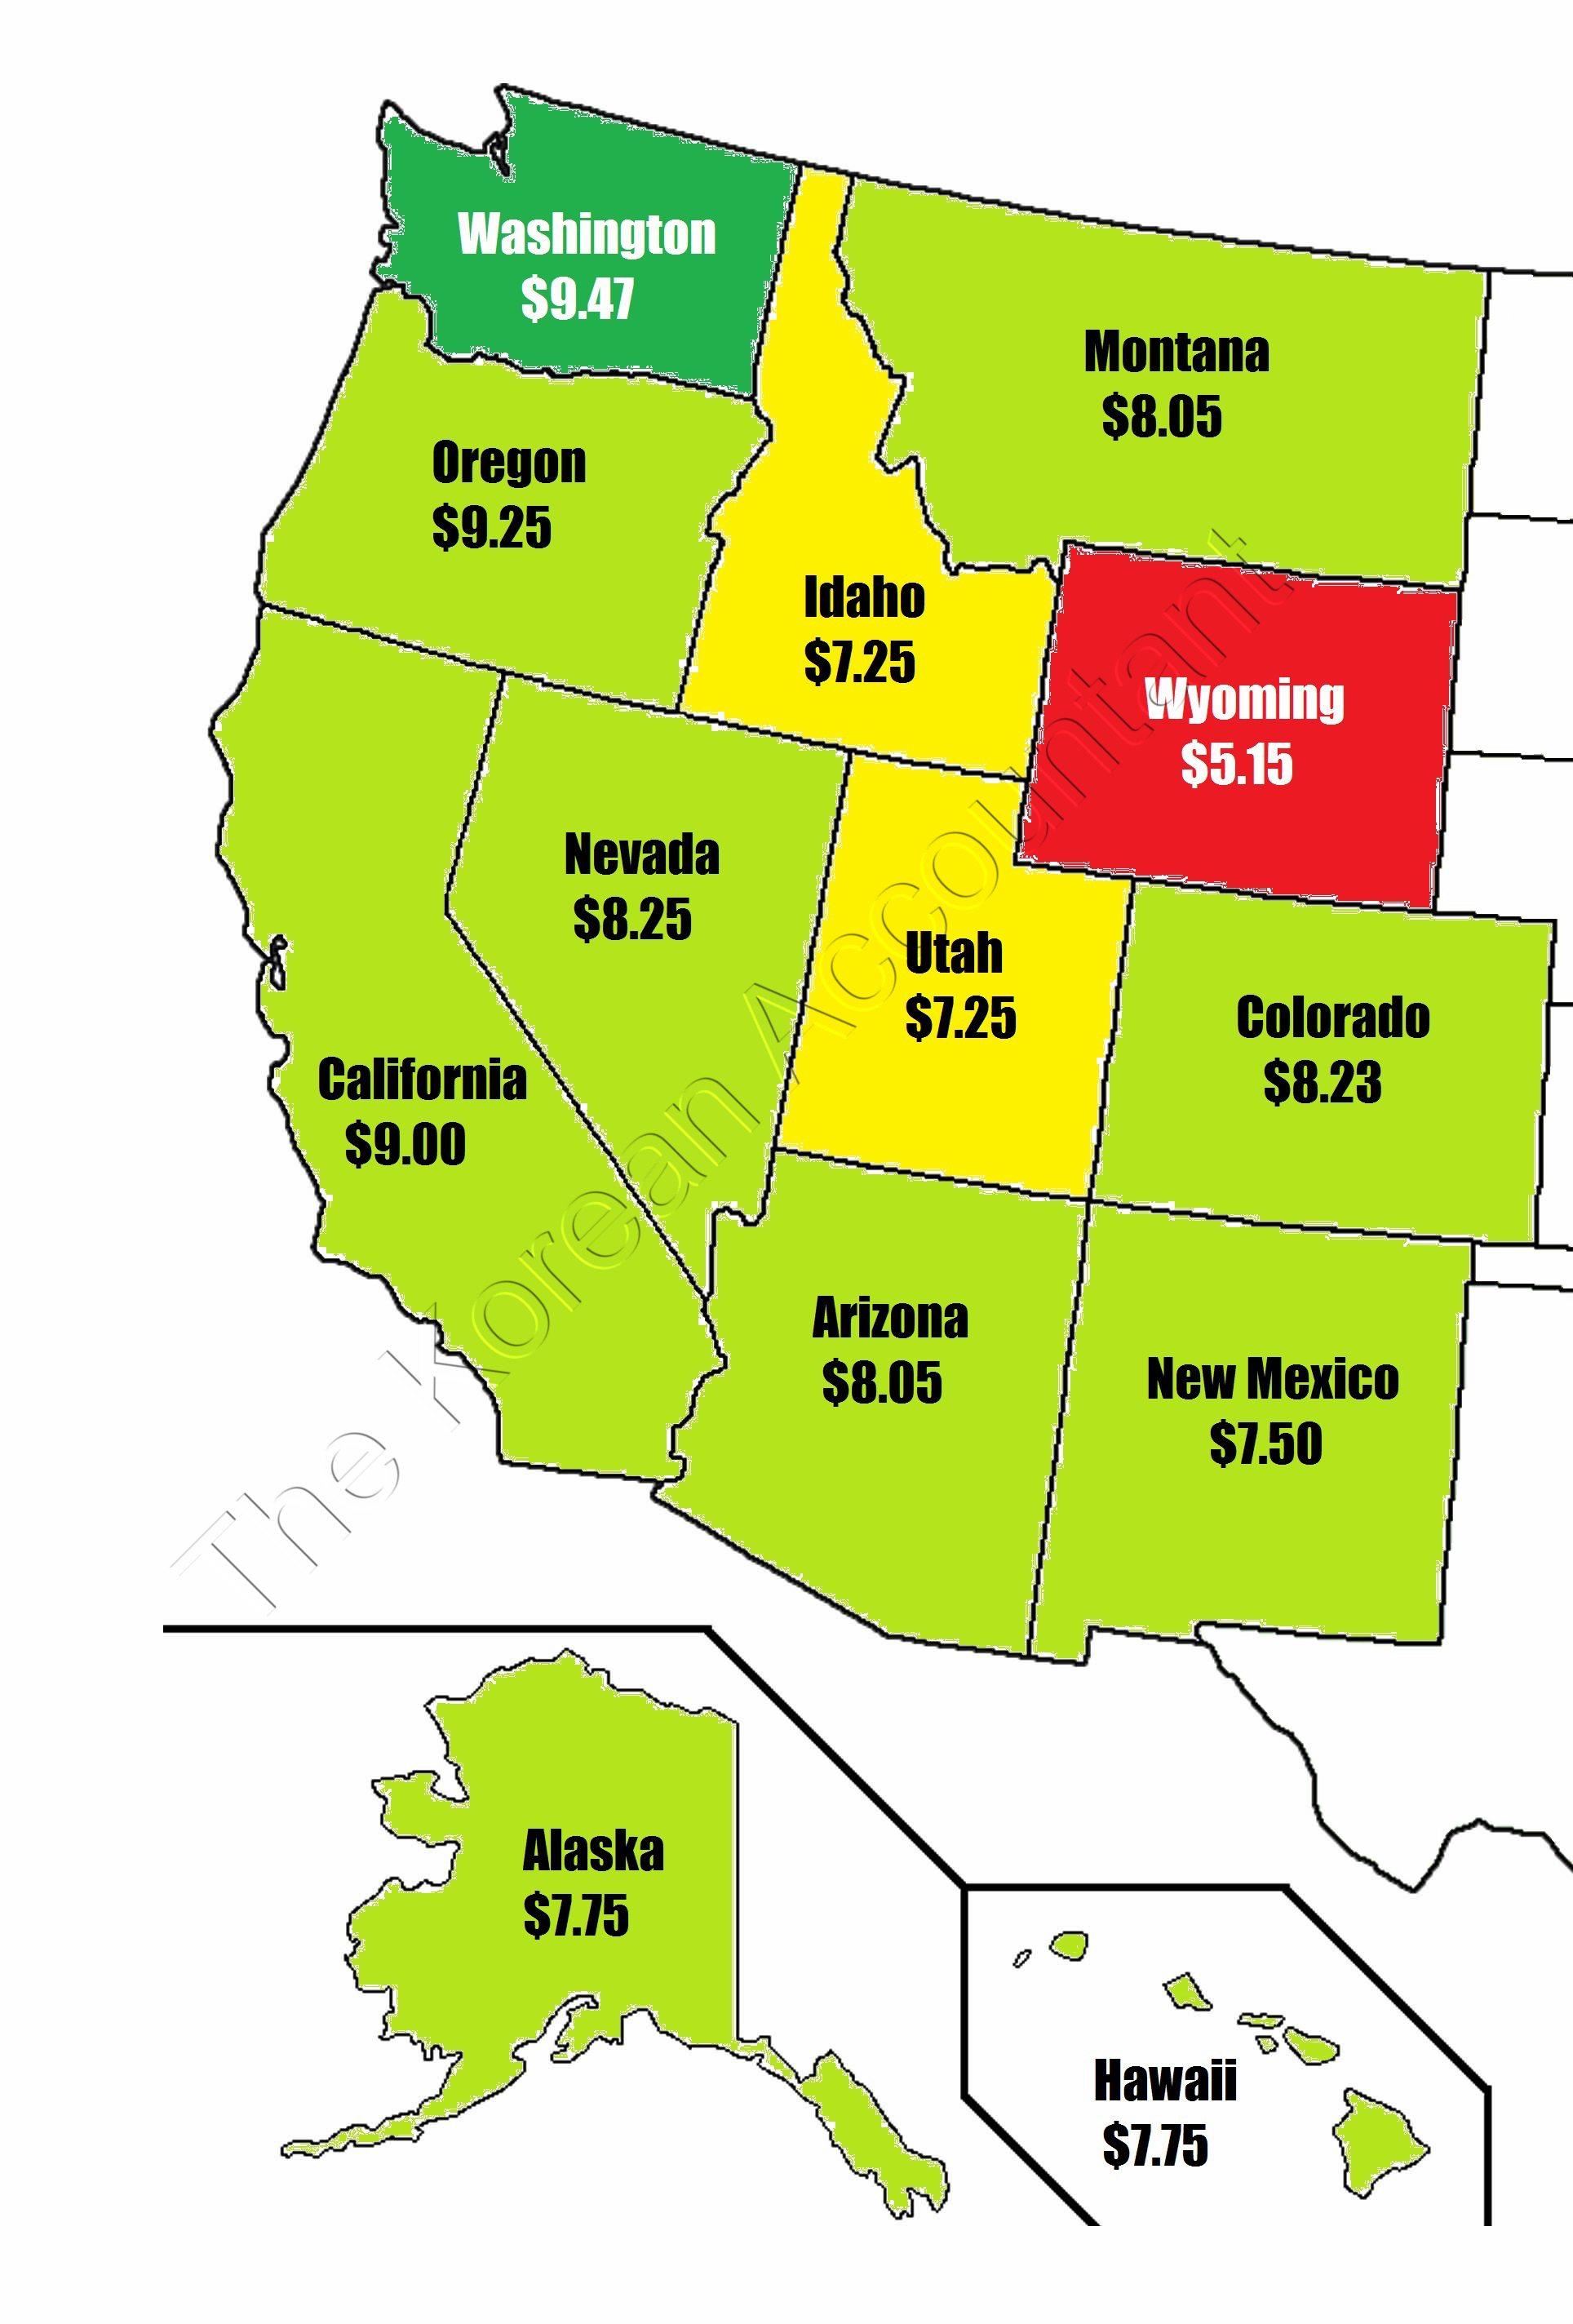 2015 Minimum Wage Rates By State | The Korean Accountant